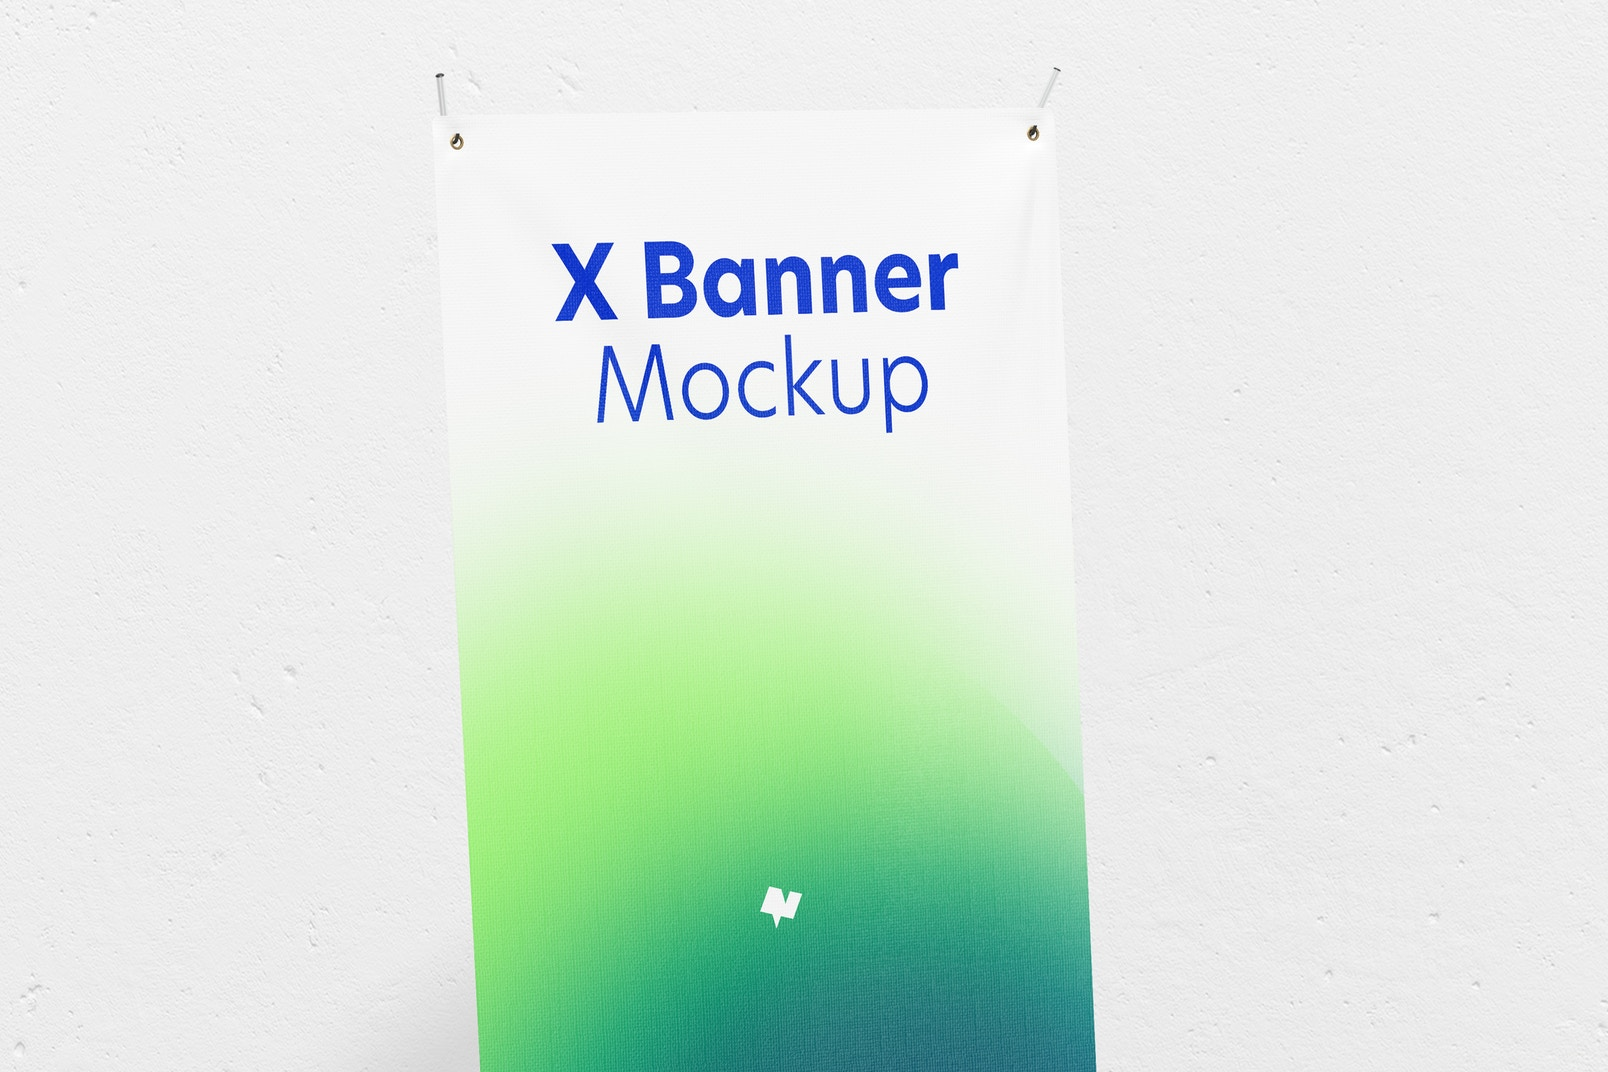 X Banner Mockup, Perspective